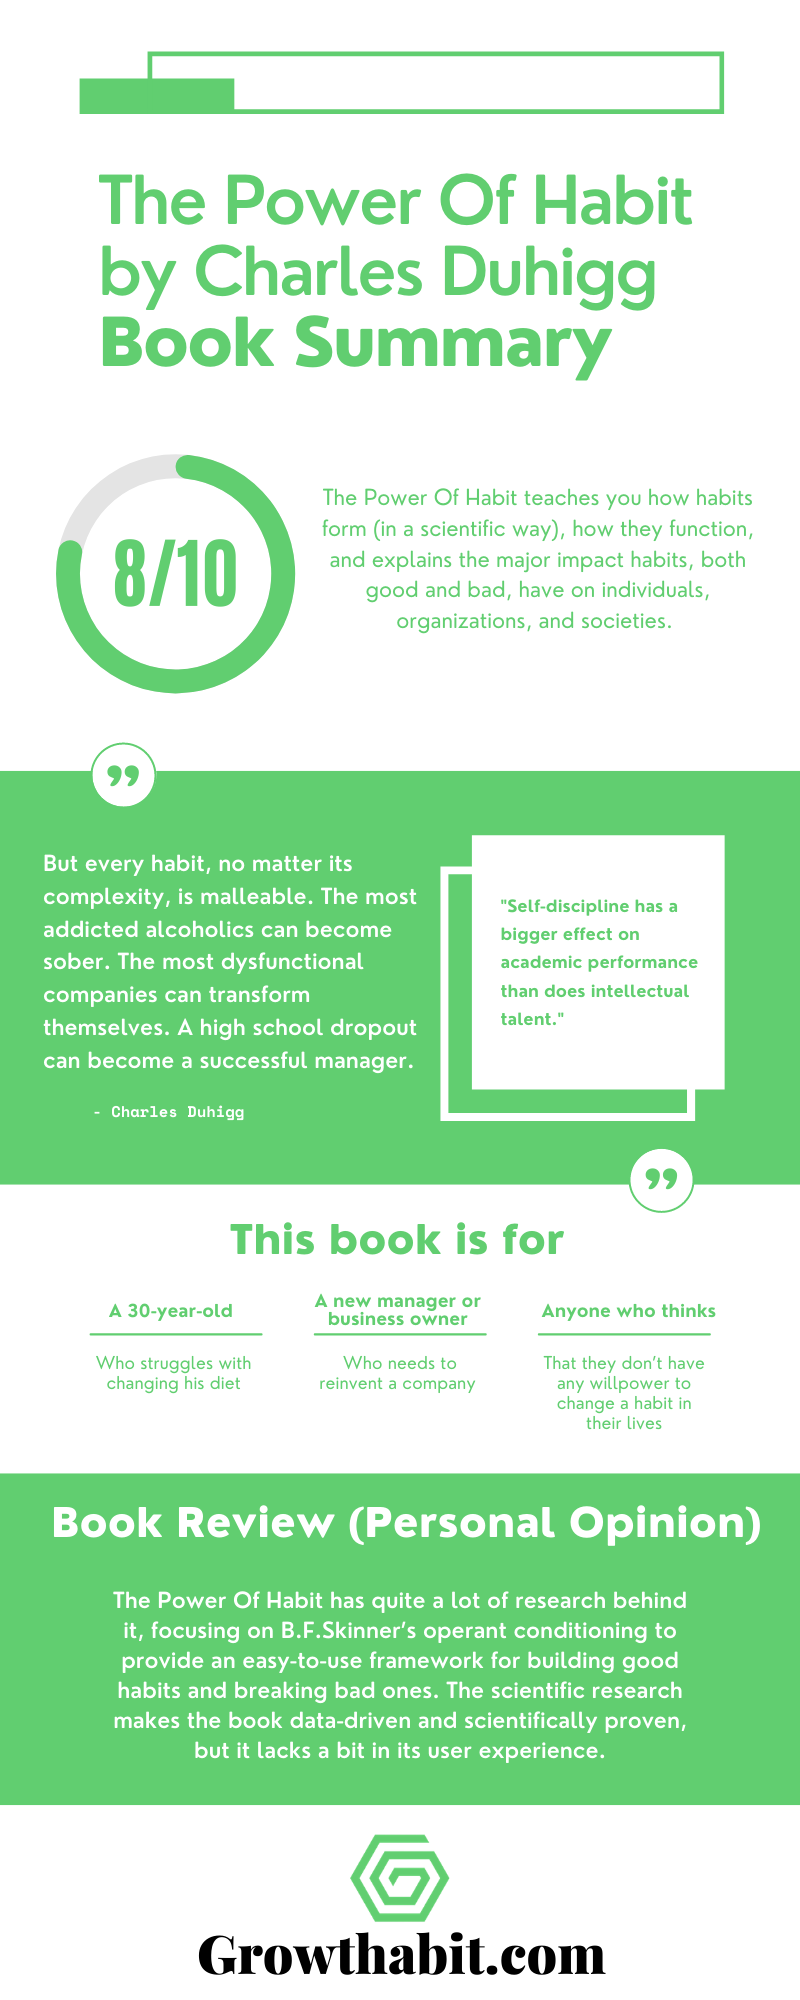 The Power Of Habit Charles Duhigg Book Summary Infographic